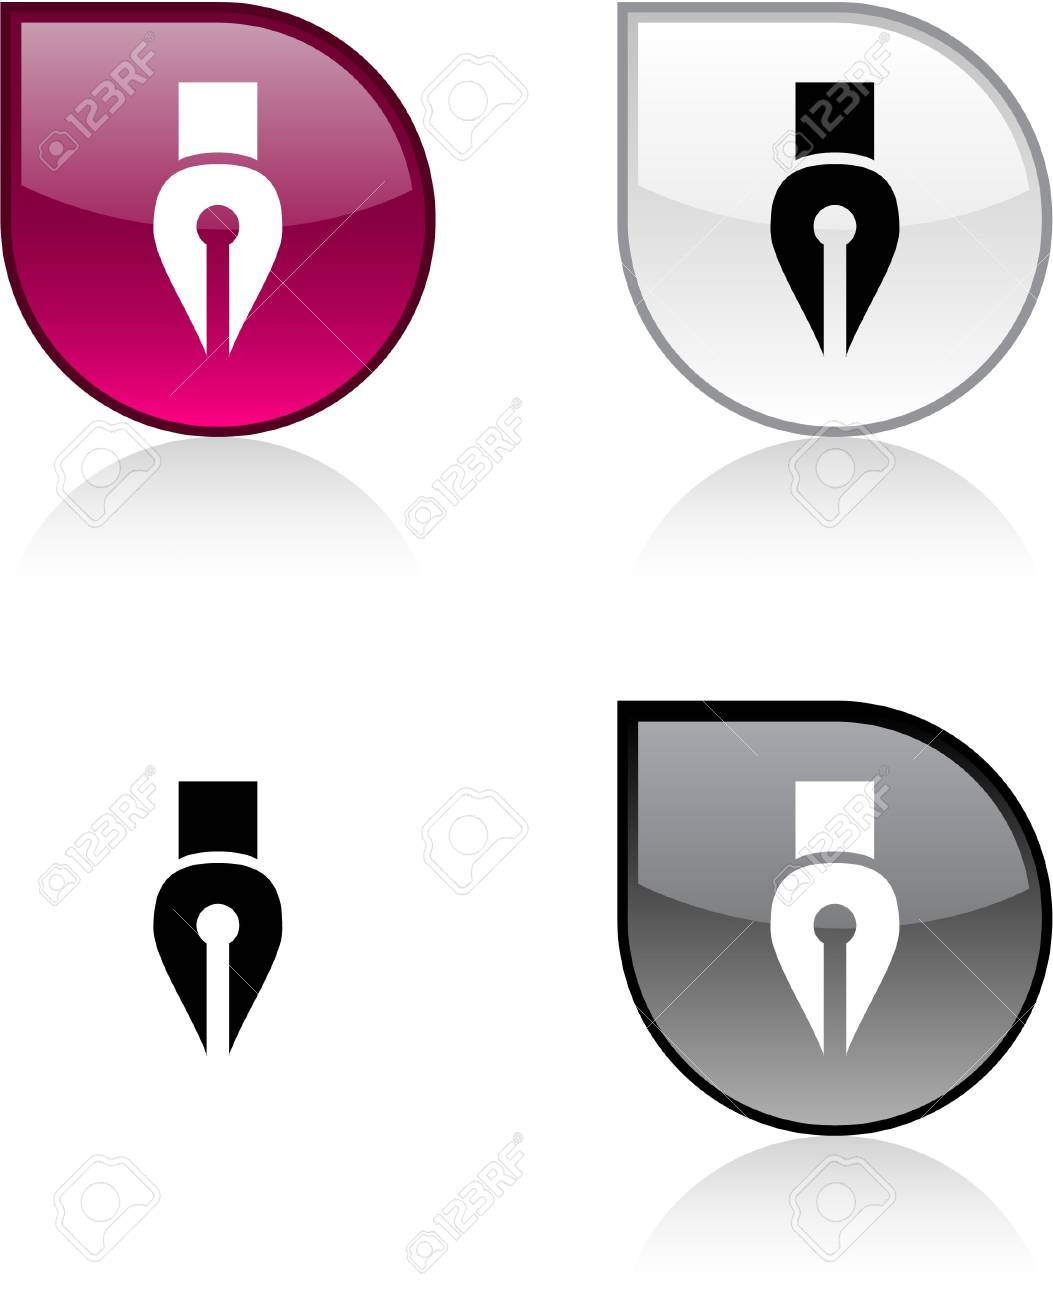 Pen glossy drop vibrant buttons. Stock Vector - 6932947